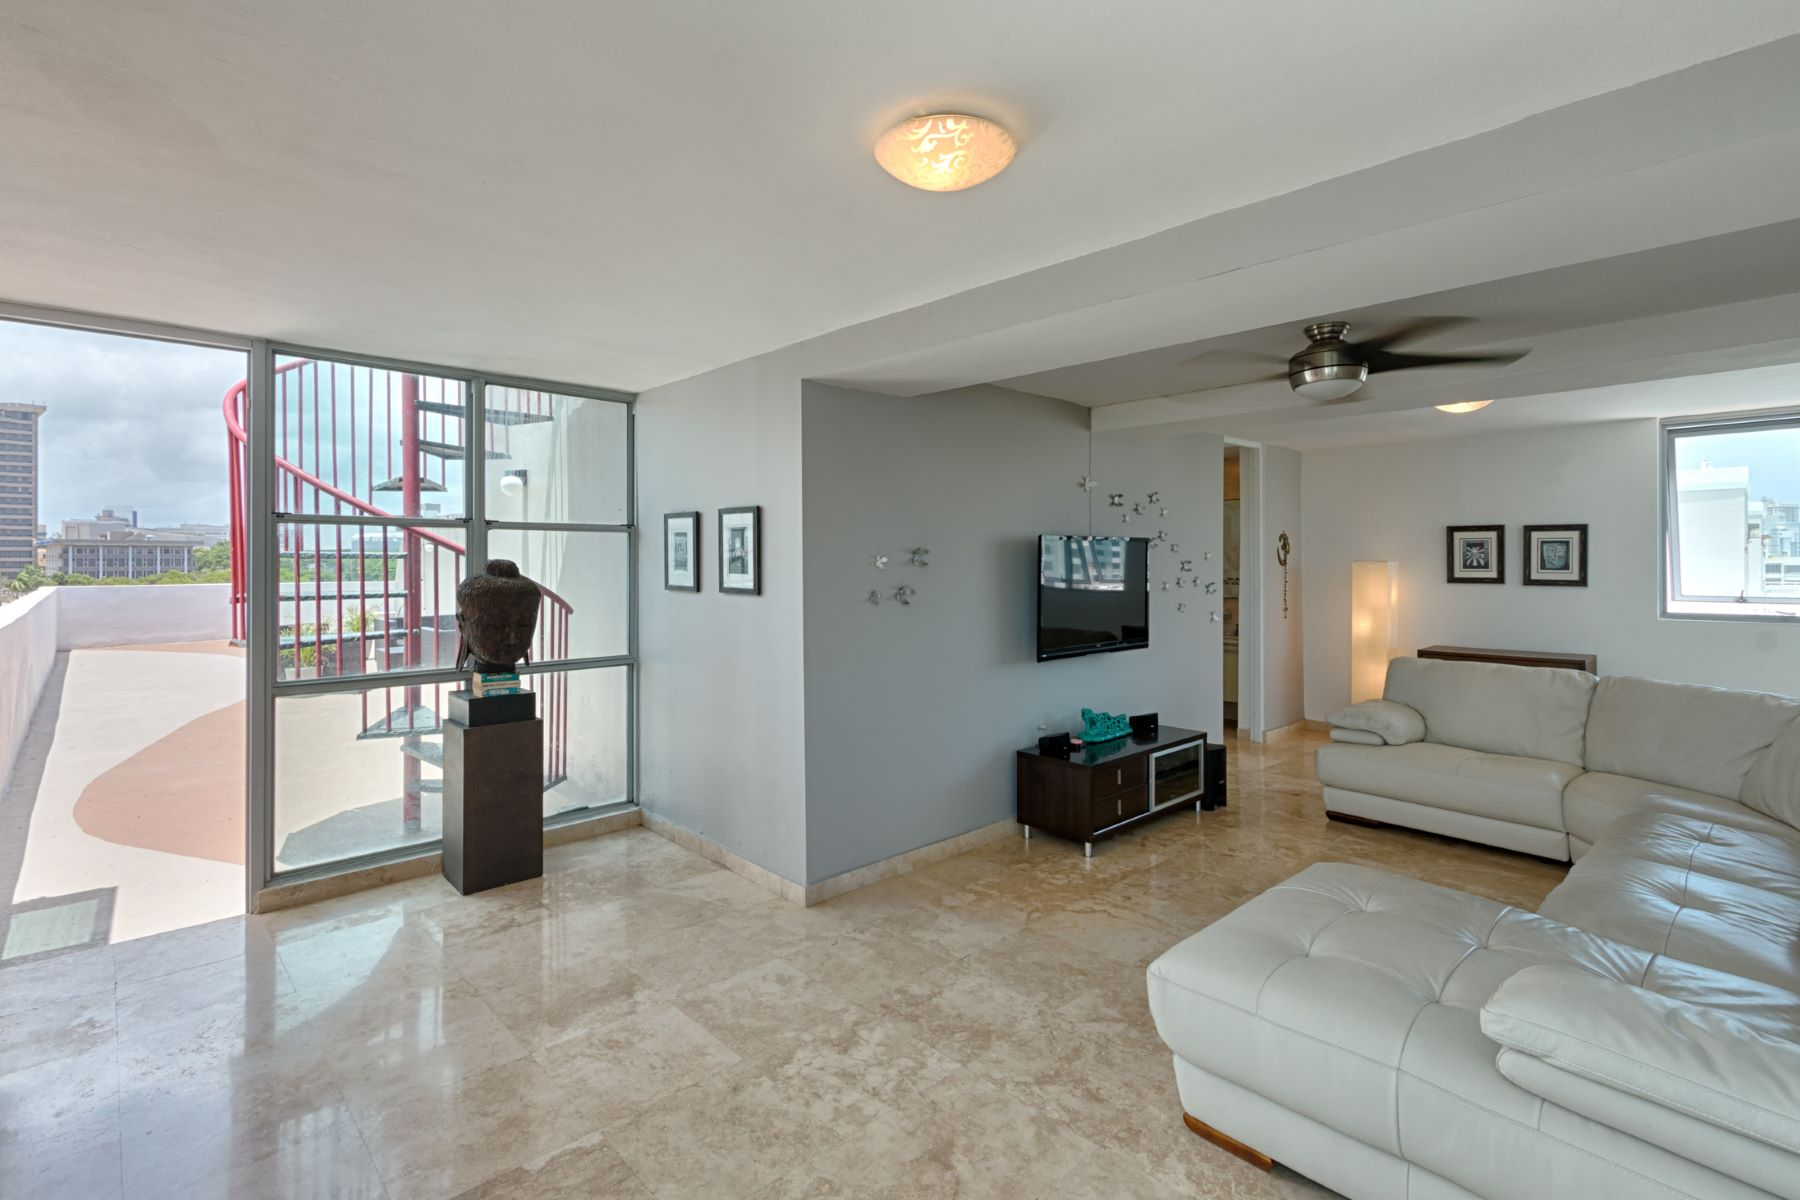 Additional photo for property listing at Costa Condado Penthouse 1420 Wilson Street Apt. 801 San Juan, Puerto Rico 00907 Puerto Rico